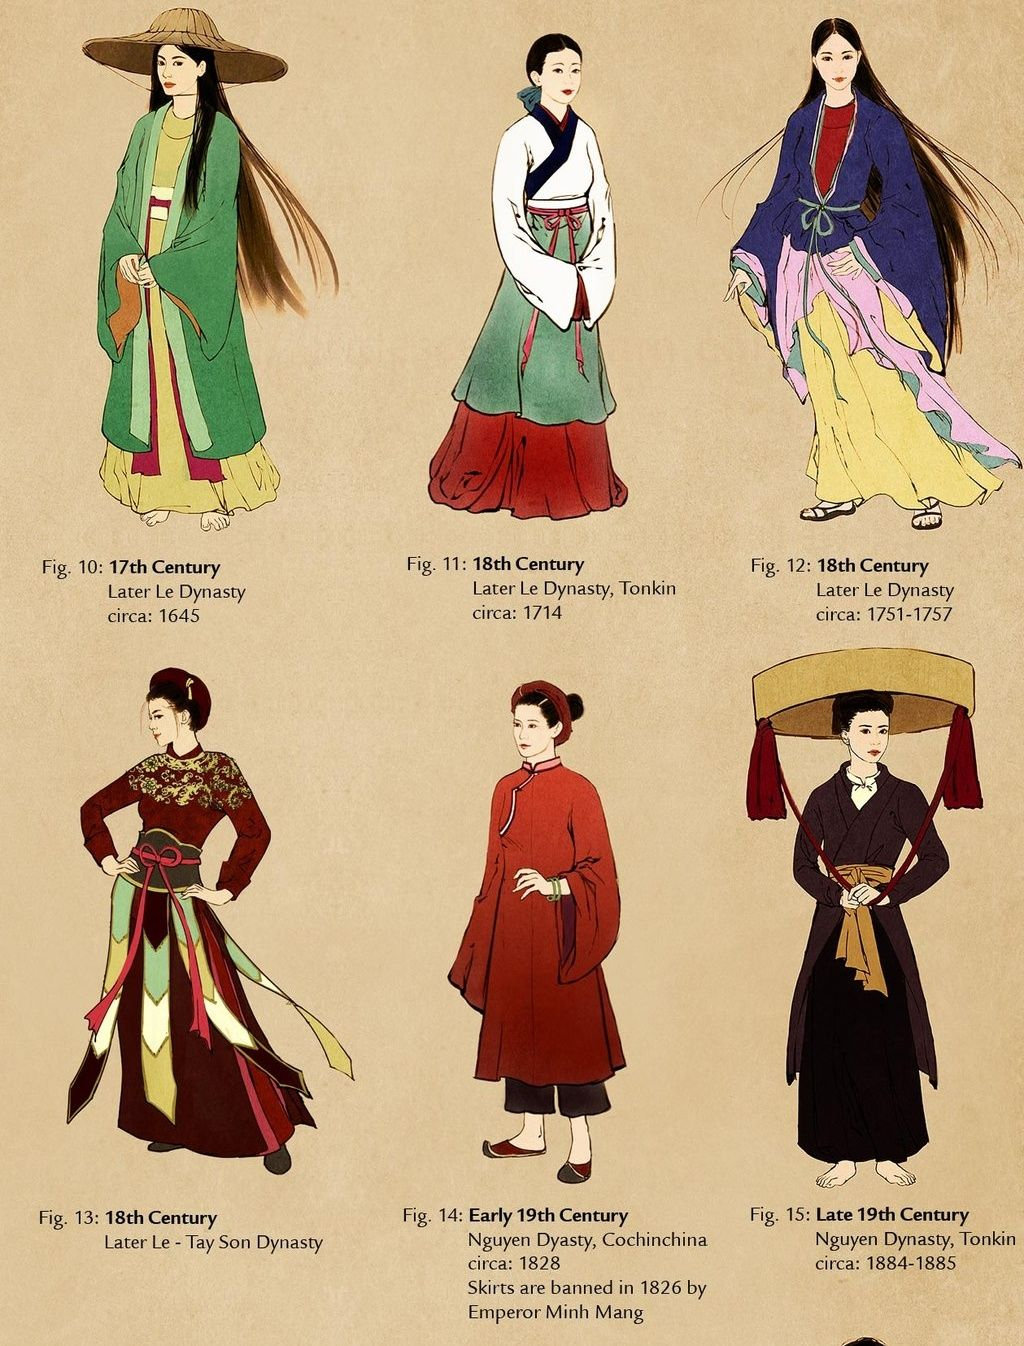 aad964a70 dyuslovethebeauties: Vietnamese Costumes Through... | Of Traditions ...